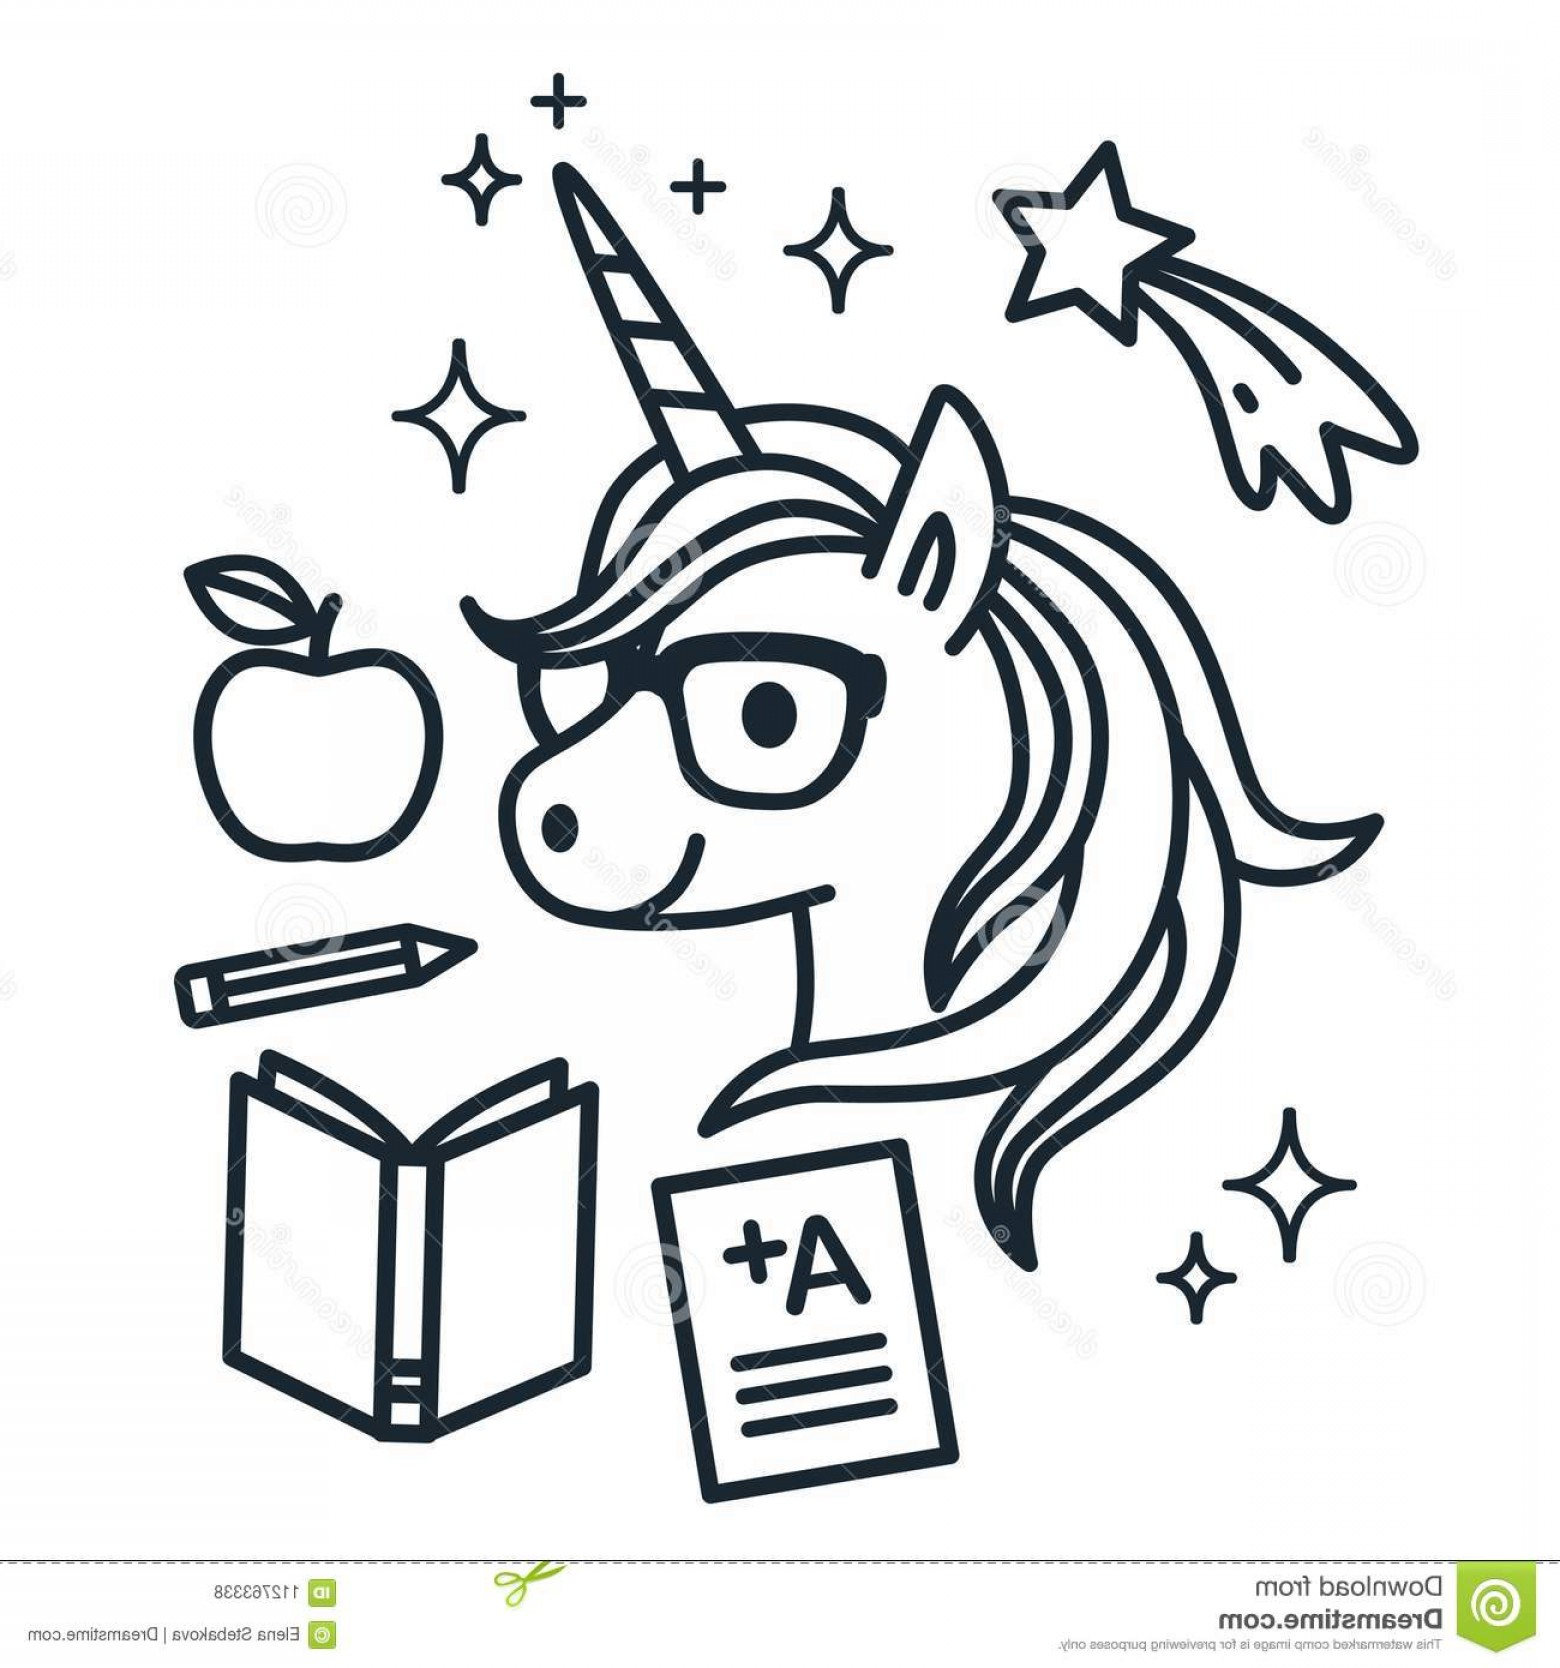 School Themed Vector: Cute Unicorn Wearing Eyeglasses School Themed Icons Around Single Color Outline Vector Illustration Simple Line Doodles Image